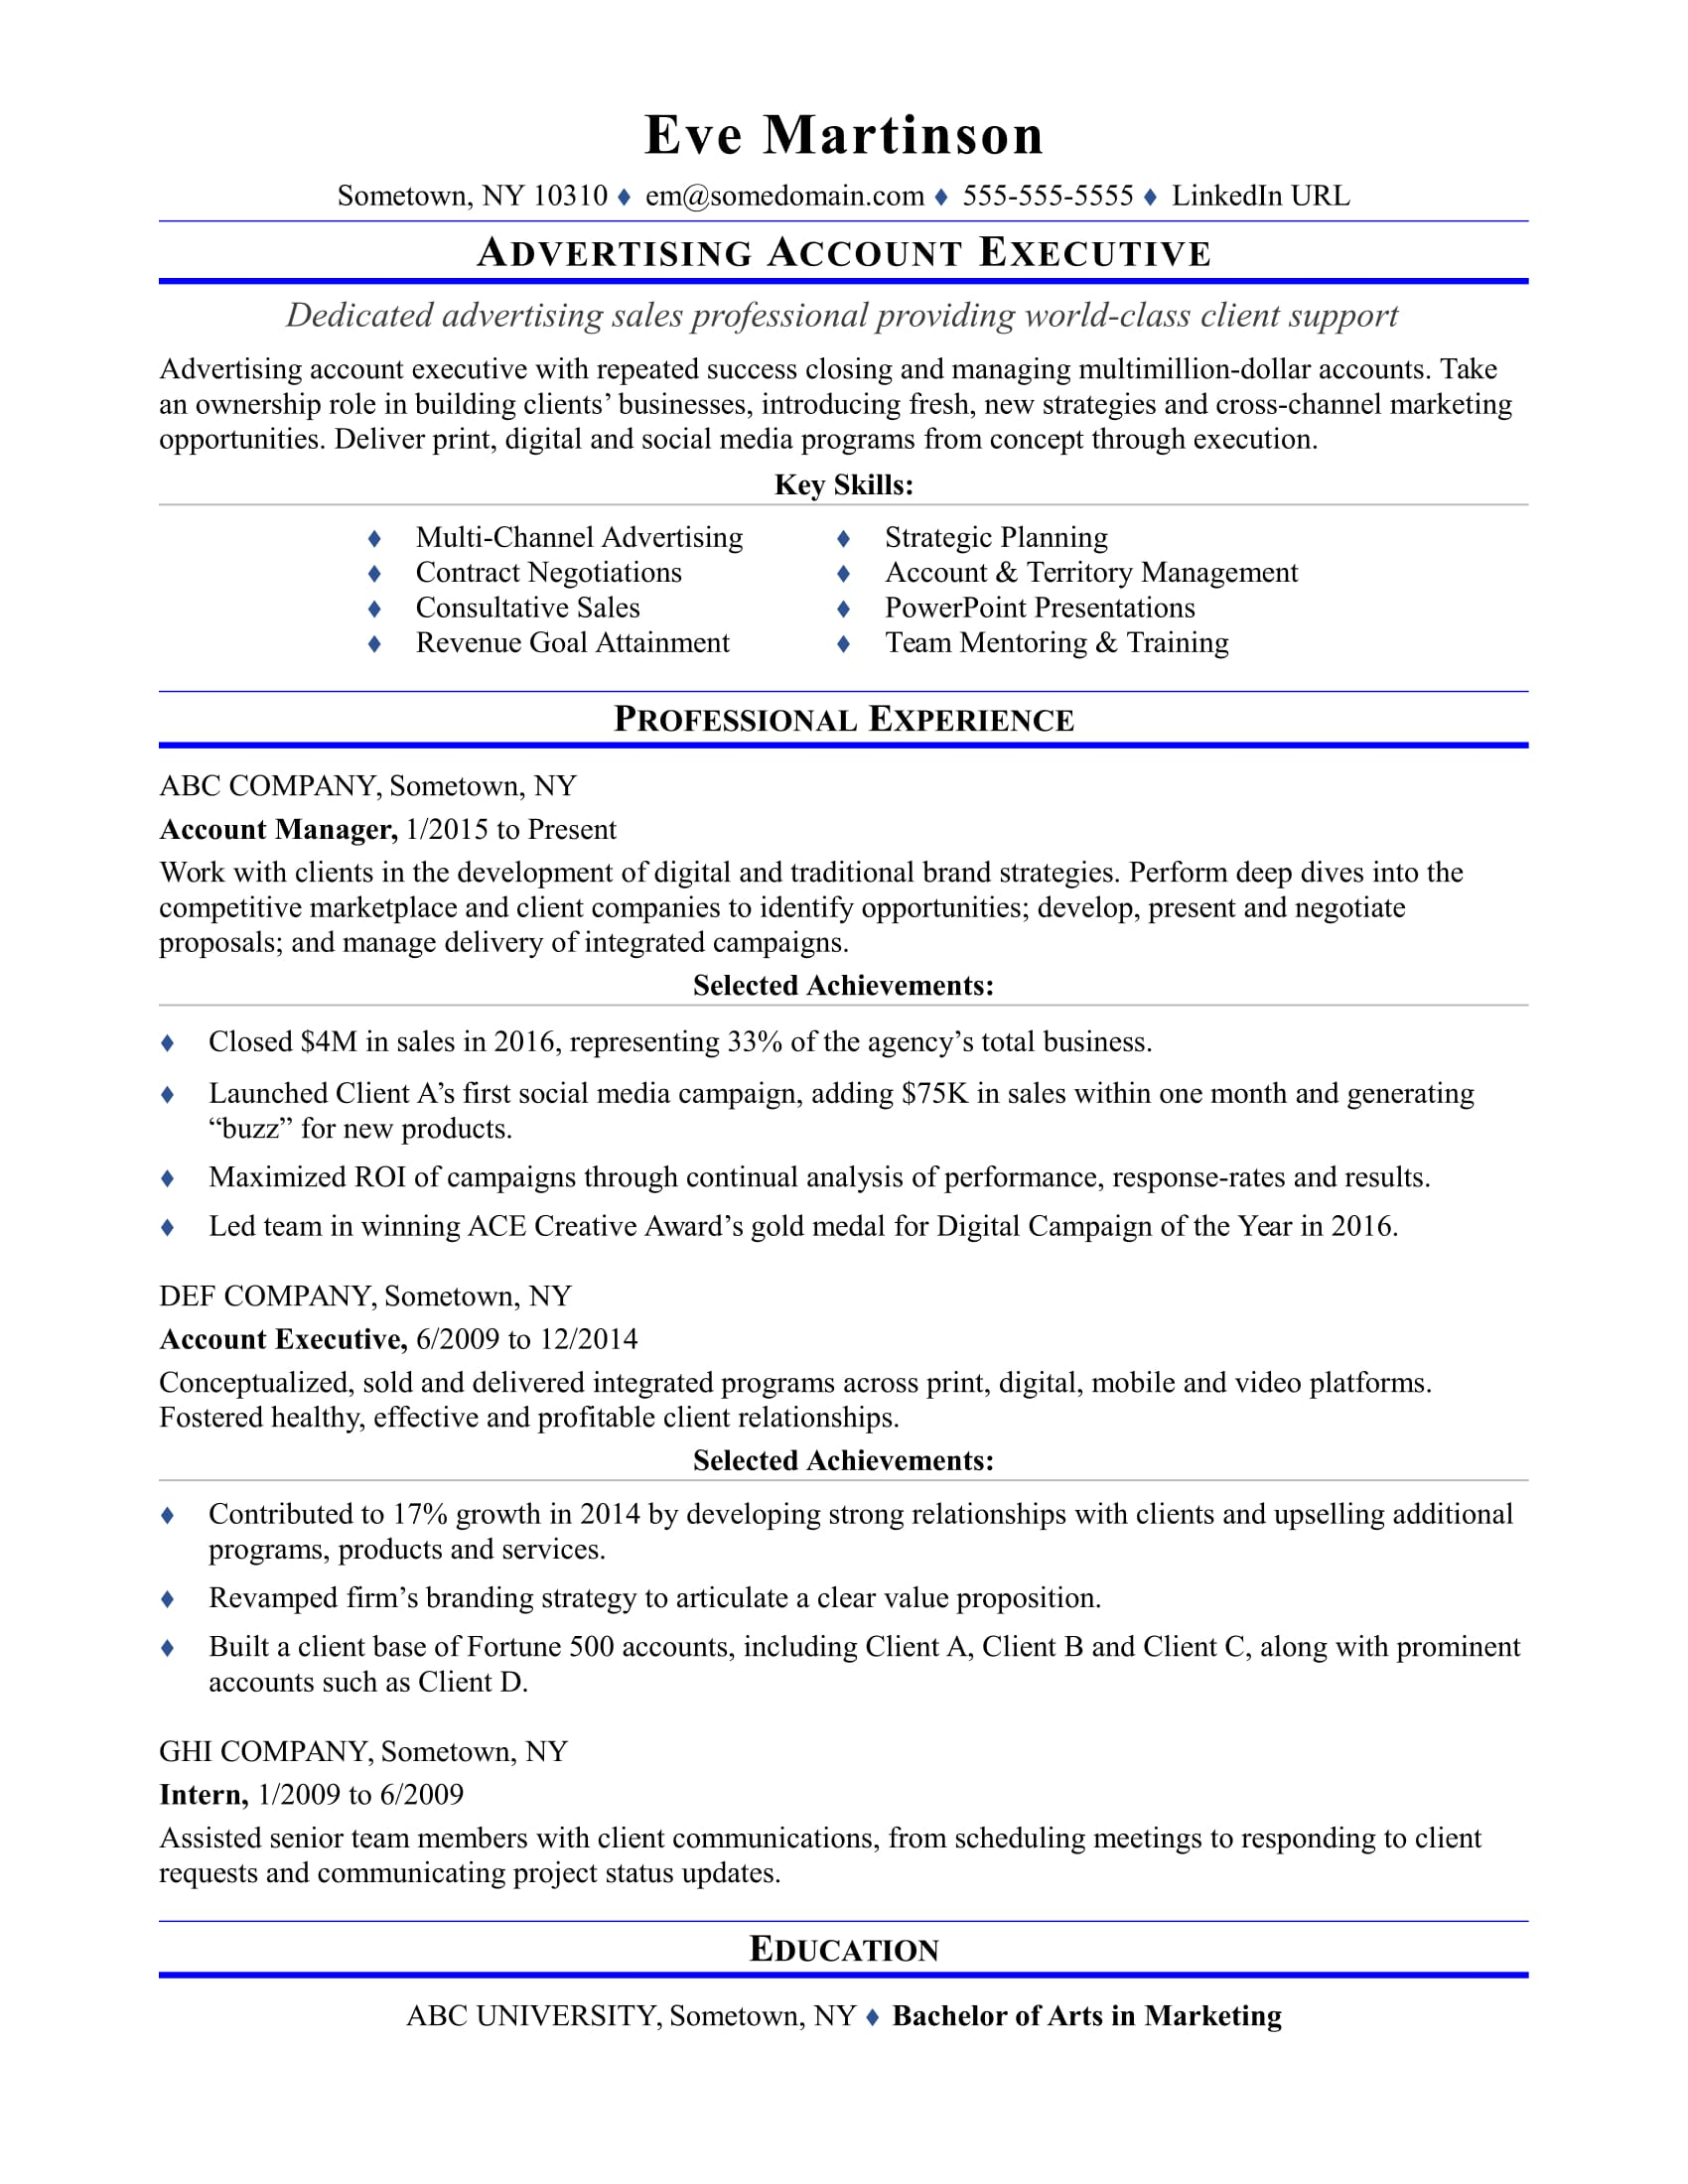 sample resume for an advertising account executive monster example professional profile Resume Resume Example Professional Profile About Yourself